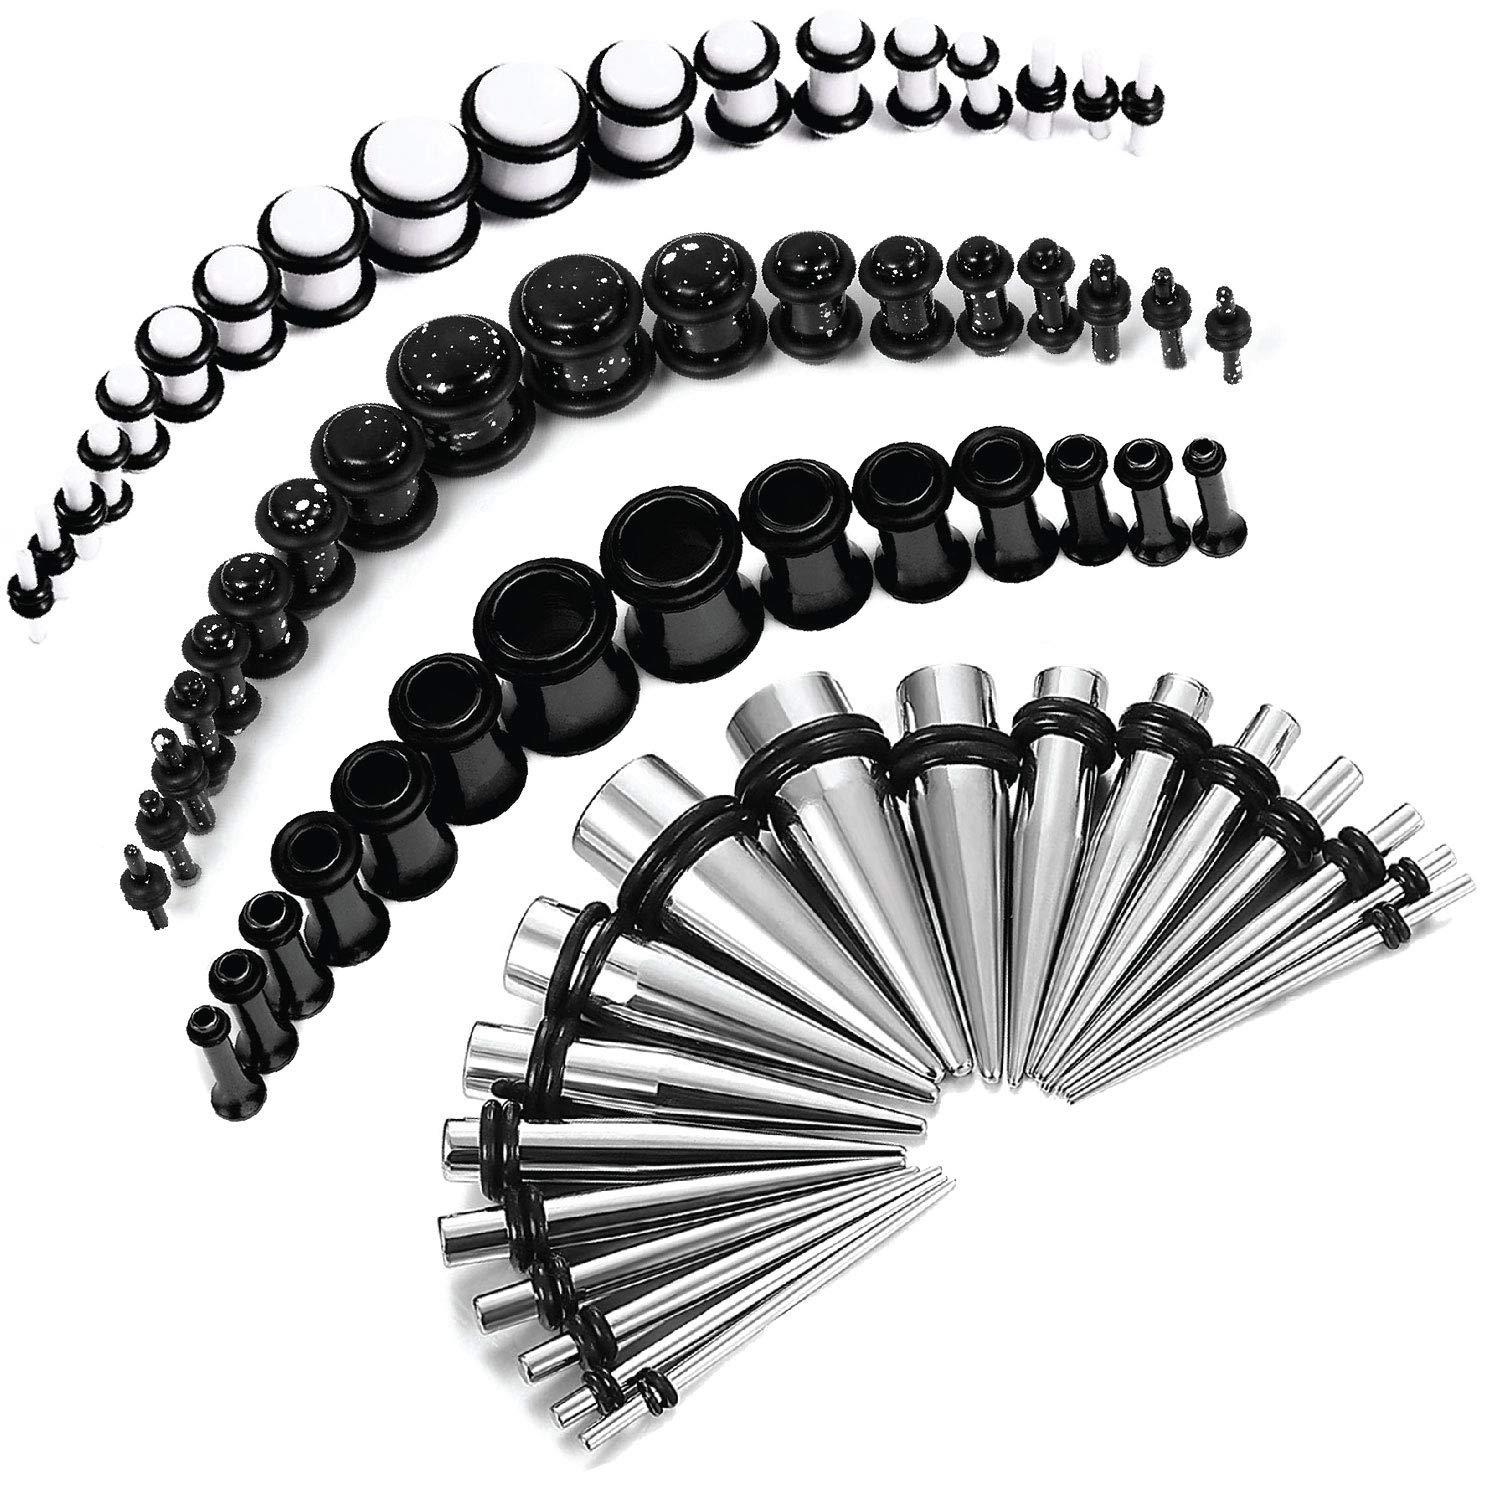 BodyJ4You 72PC Gauges Kit White Splatter Acrylic Plugs Black Steel Tapers 14G-00G Stretching Set by BodyJ4You